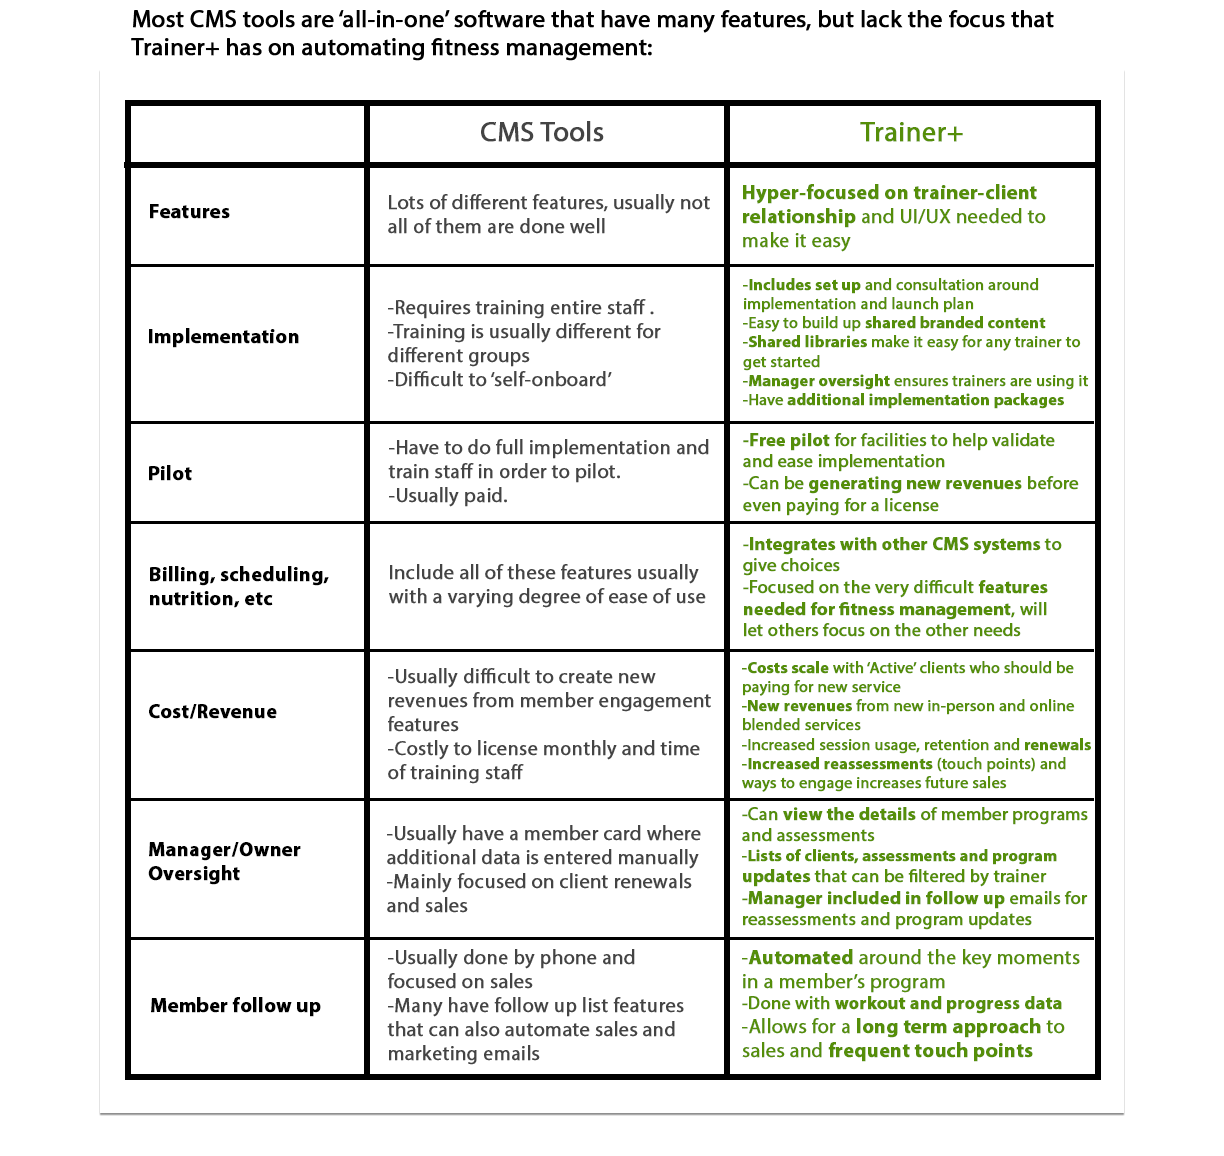 Why comparison charts - CMS.png